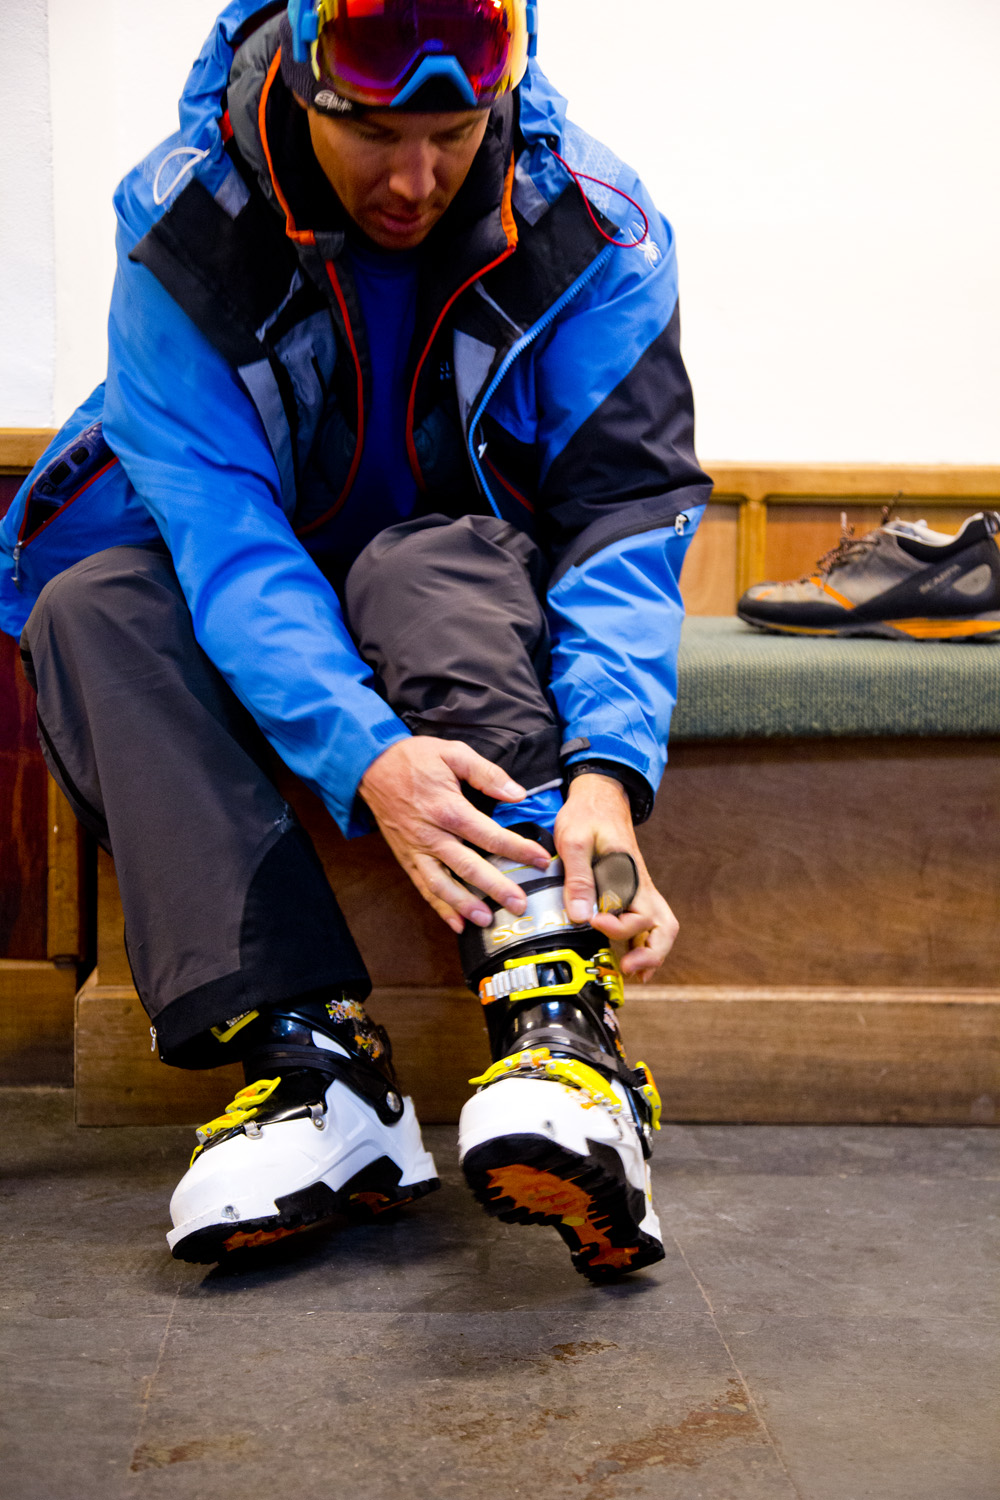 Chris Davenport puts on Scarpa boots. Photo by Adam Clark